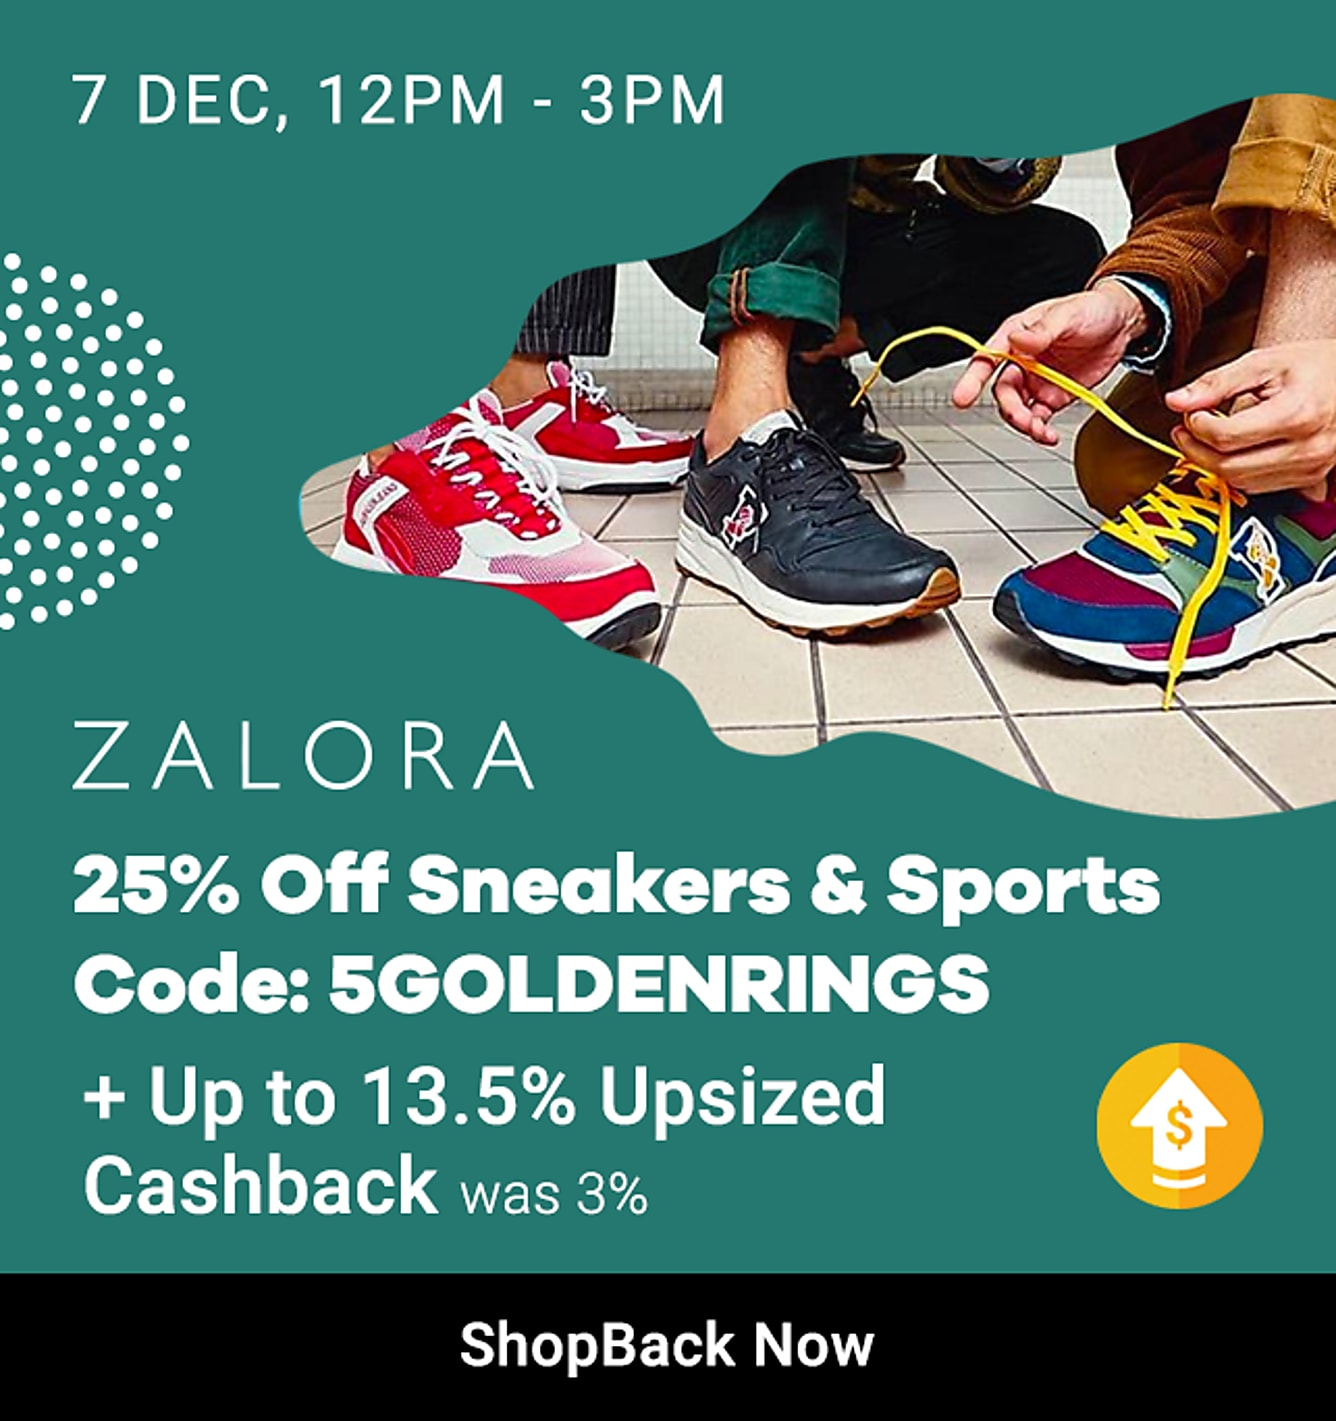 Zalora_12.12.2019_7 Dec 12pm-7 Dec 3pm 2019